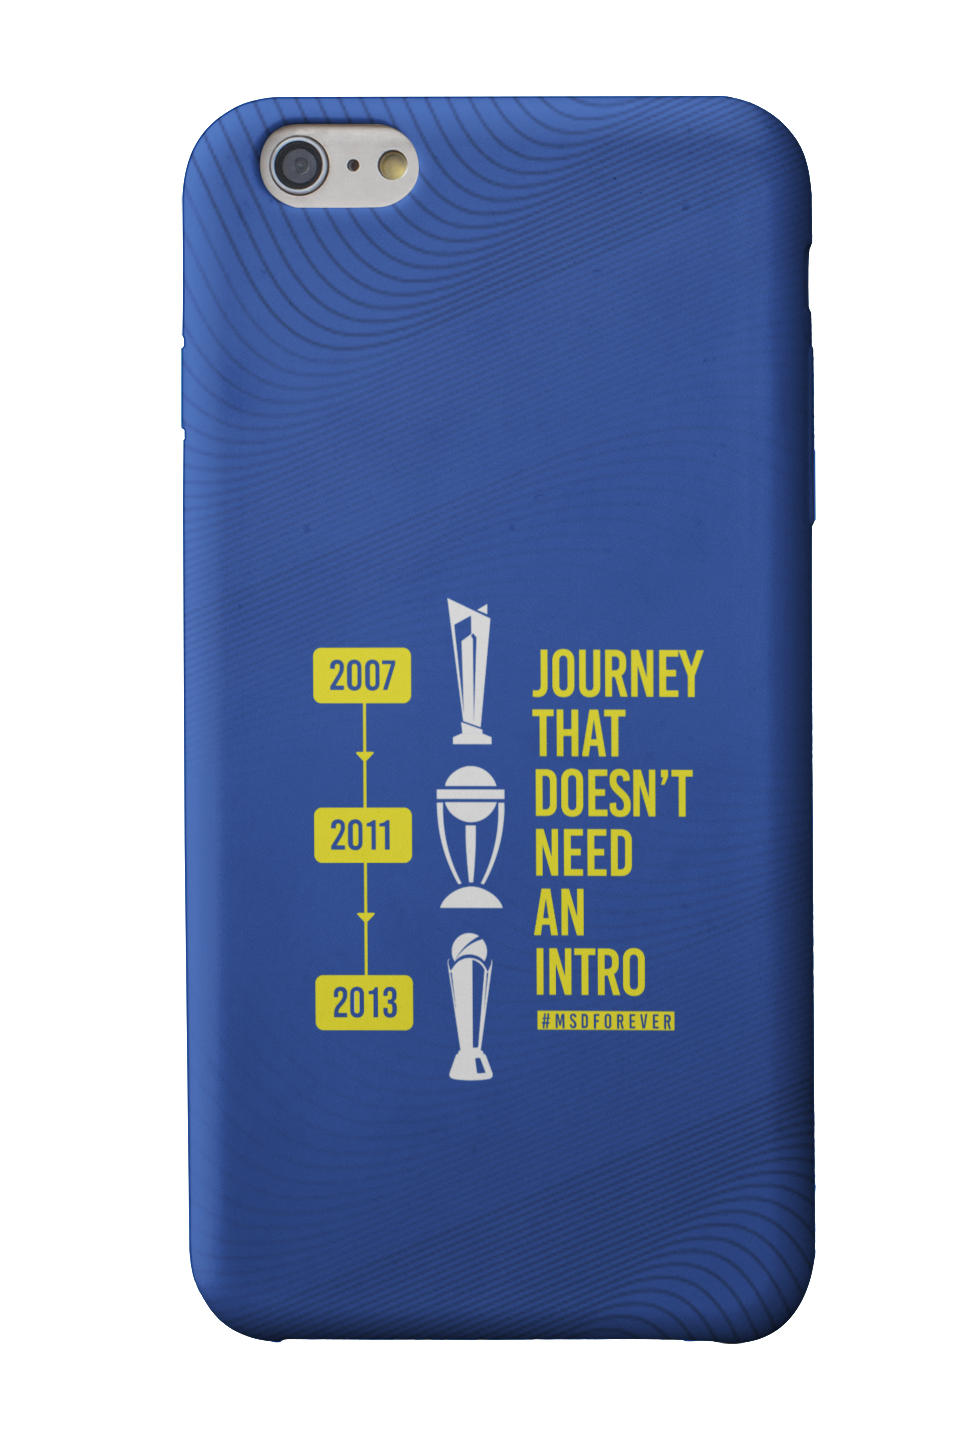 MS Dhoni Journey Phone Case - Mad Monkey